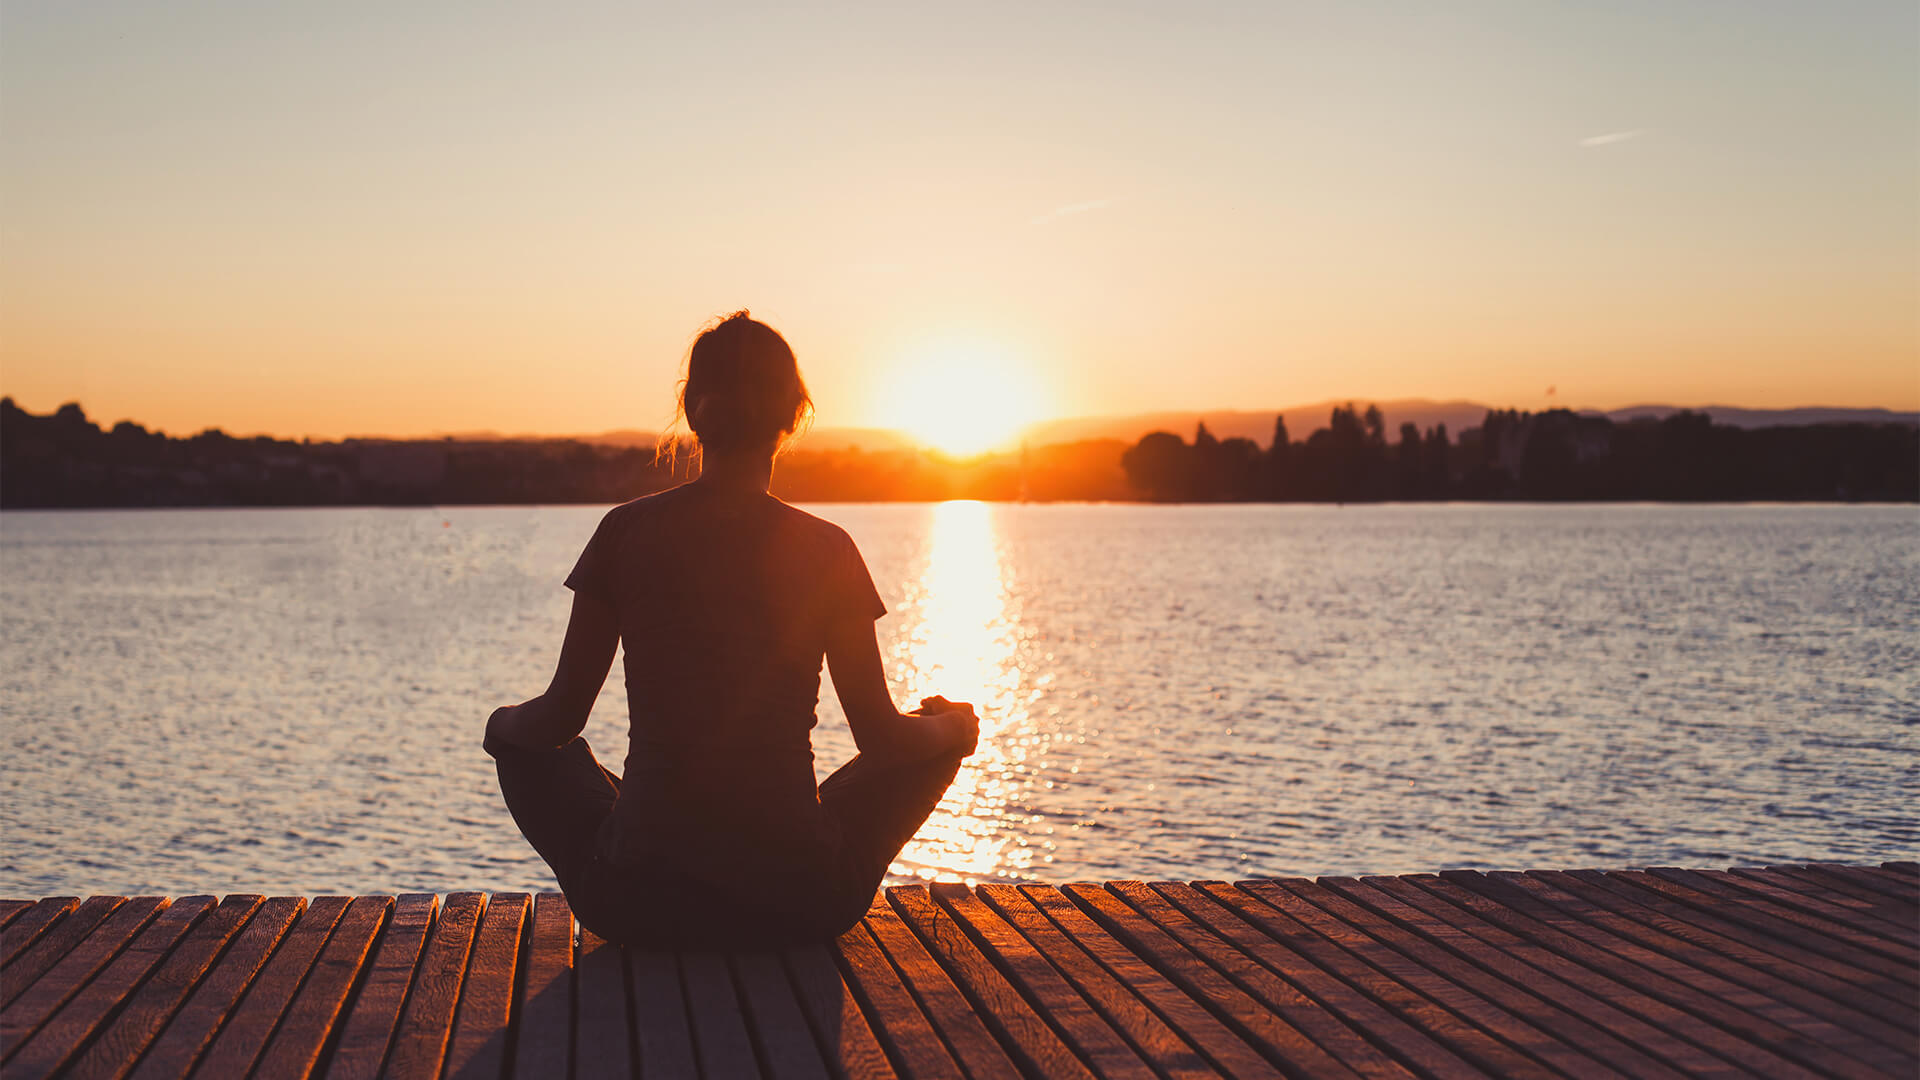 Woman meditating on a pier at sunset